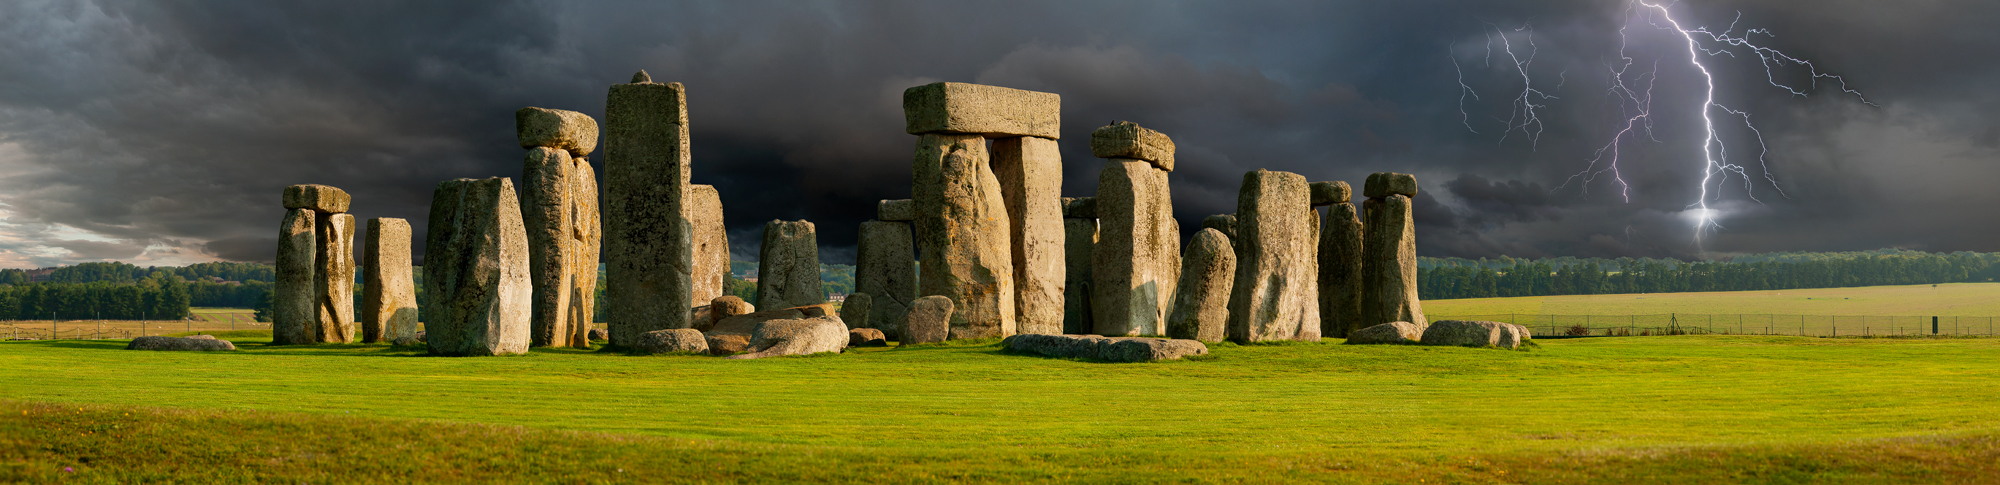 History - The Palaeolithic Period, Barbarians, Stonehenge - Assignment Example